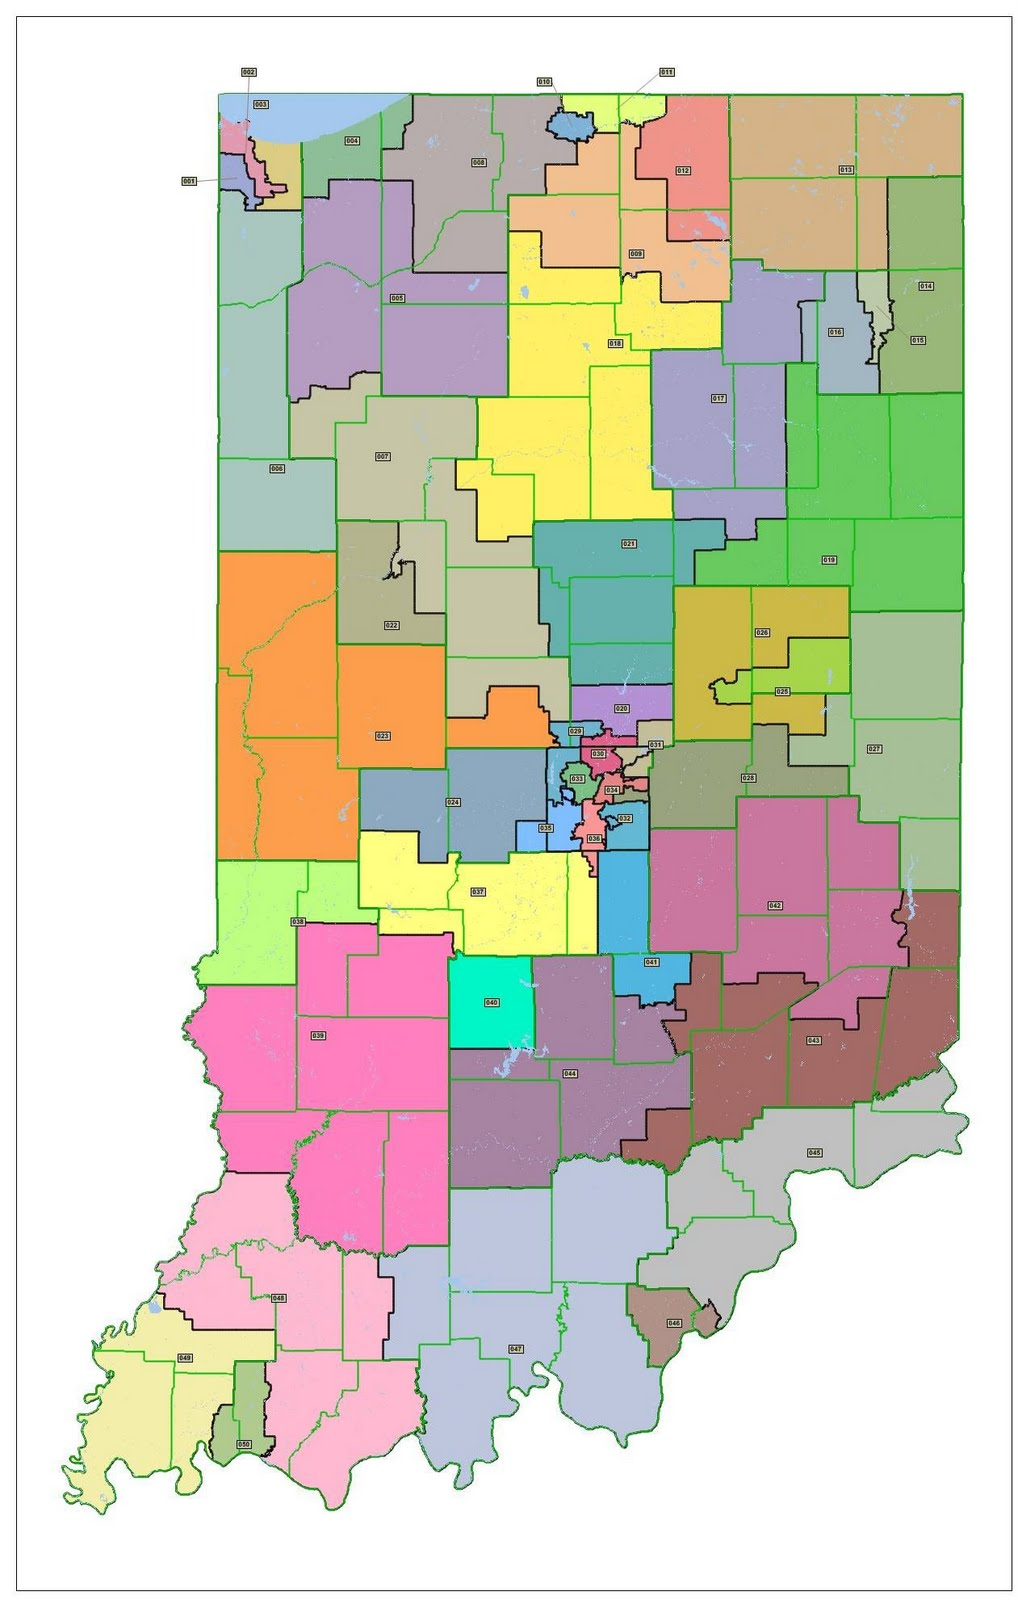 Senators By State Map.Ogden On Politics Who Do Indiana State Senators Represent Following